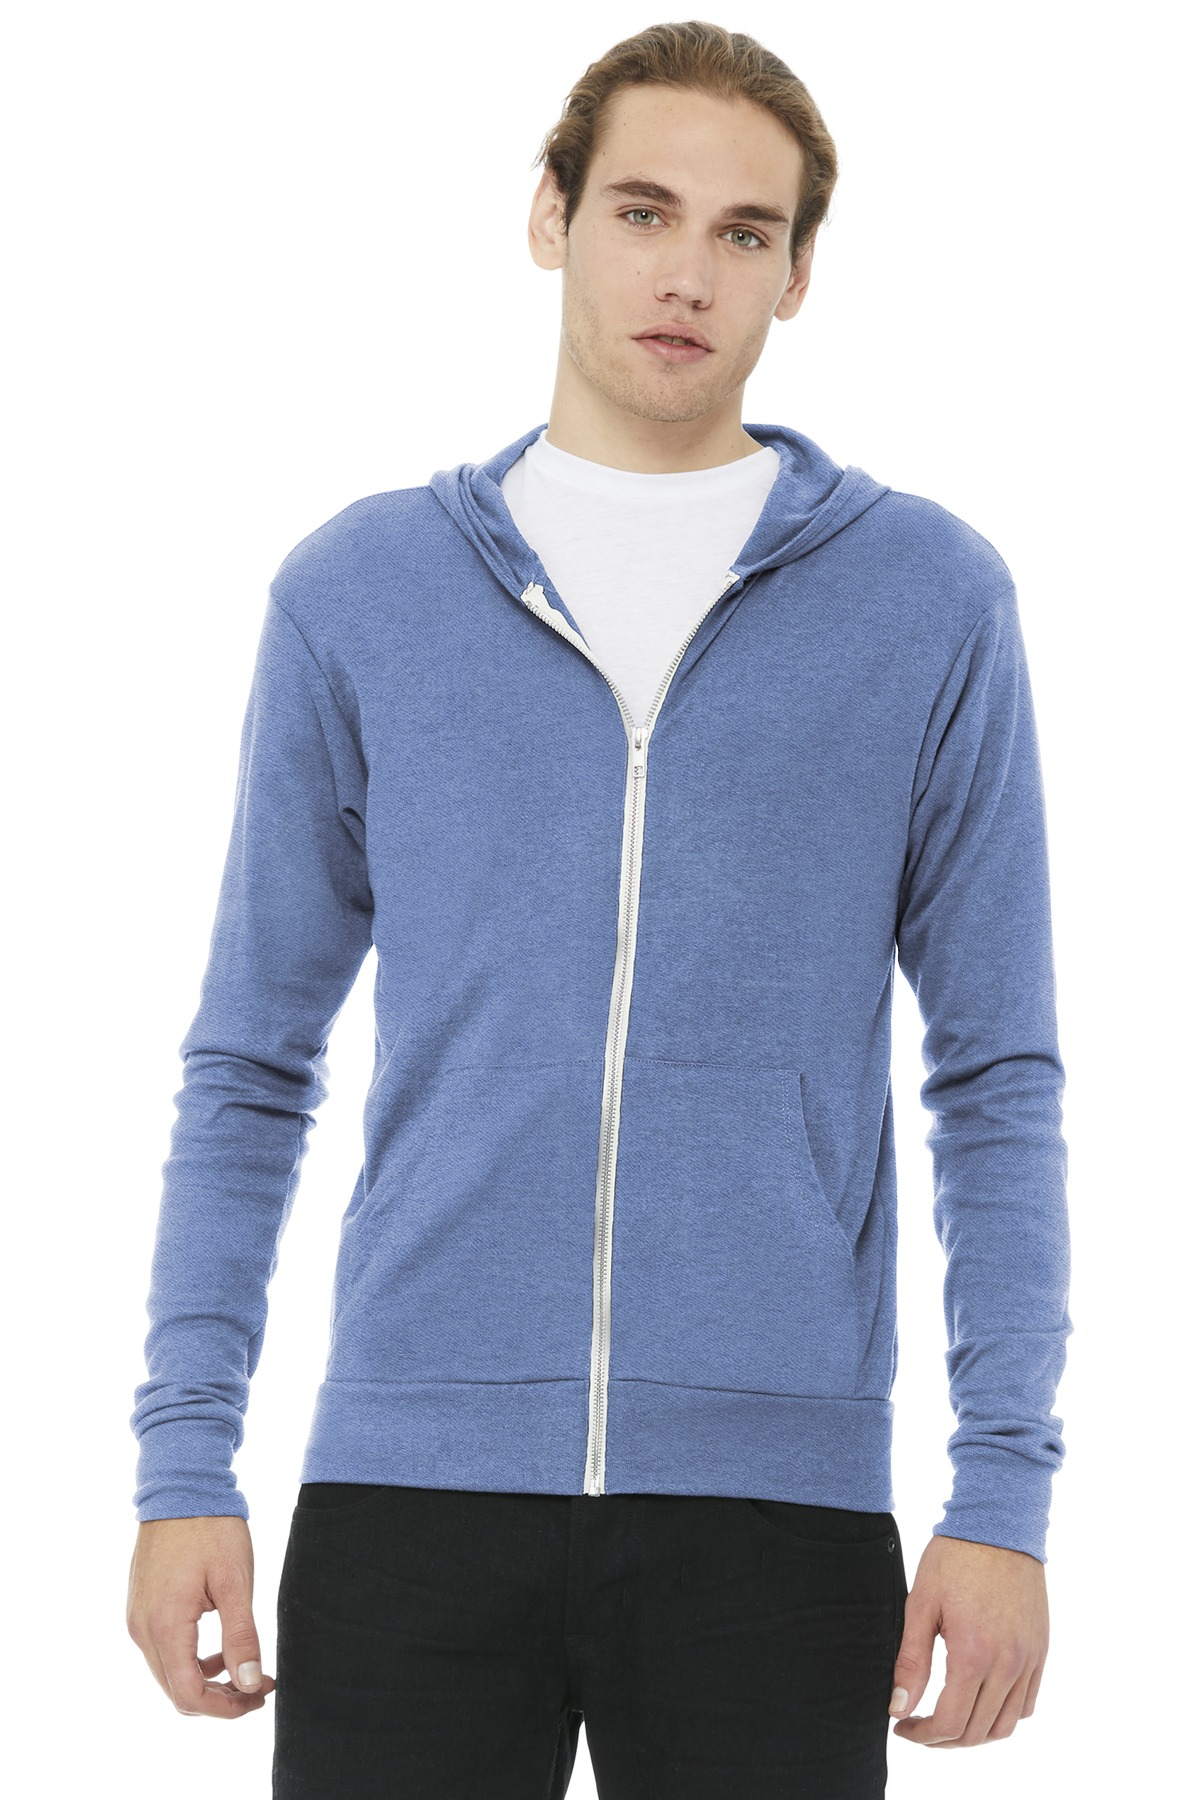 BELLA+CANVAS  ®  Unisex Triblend Full-Zip Lightweight Hoodie. BC3939 - Blue Triblend